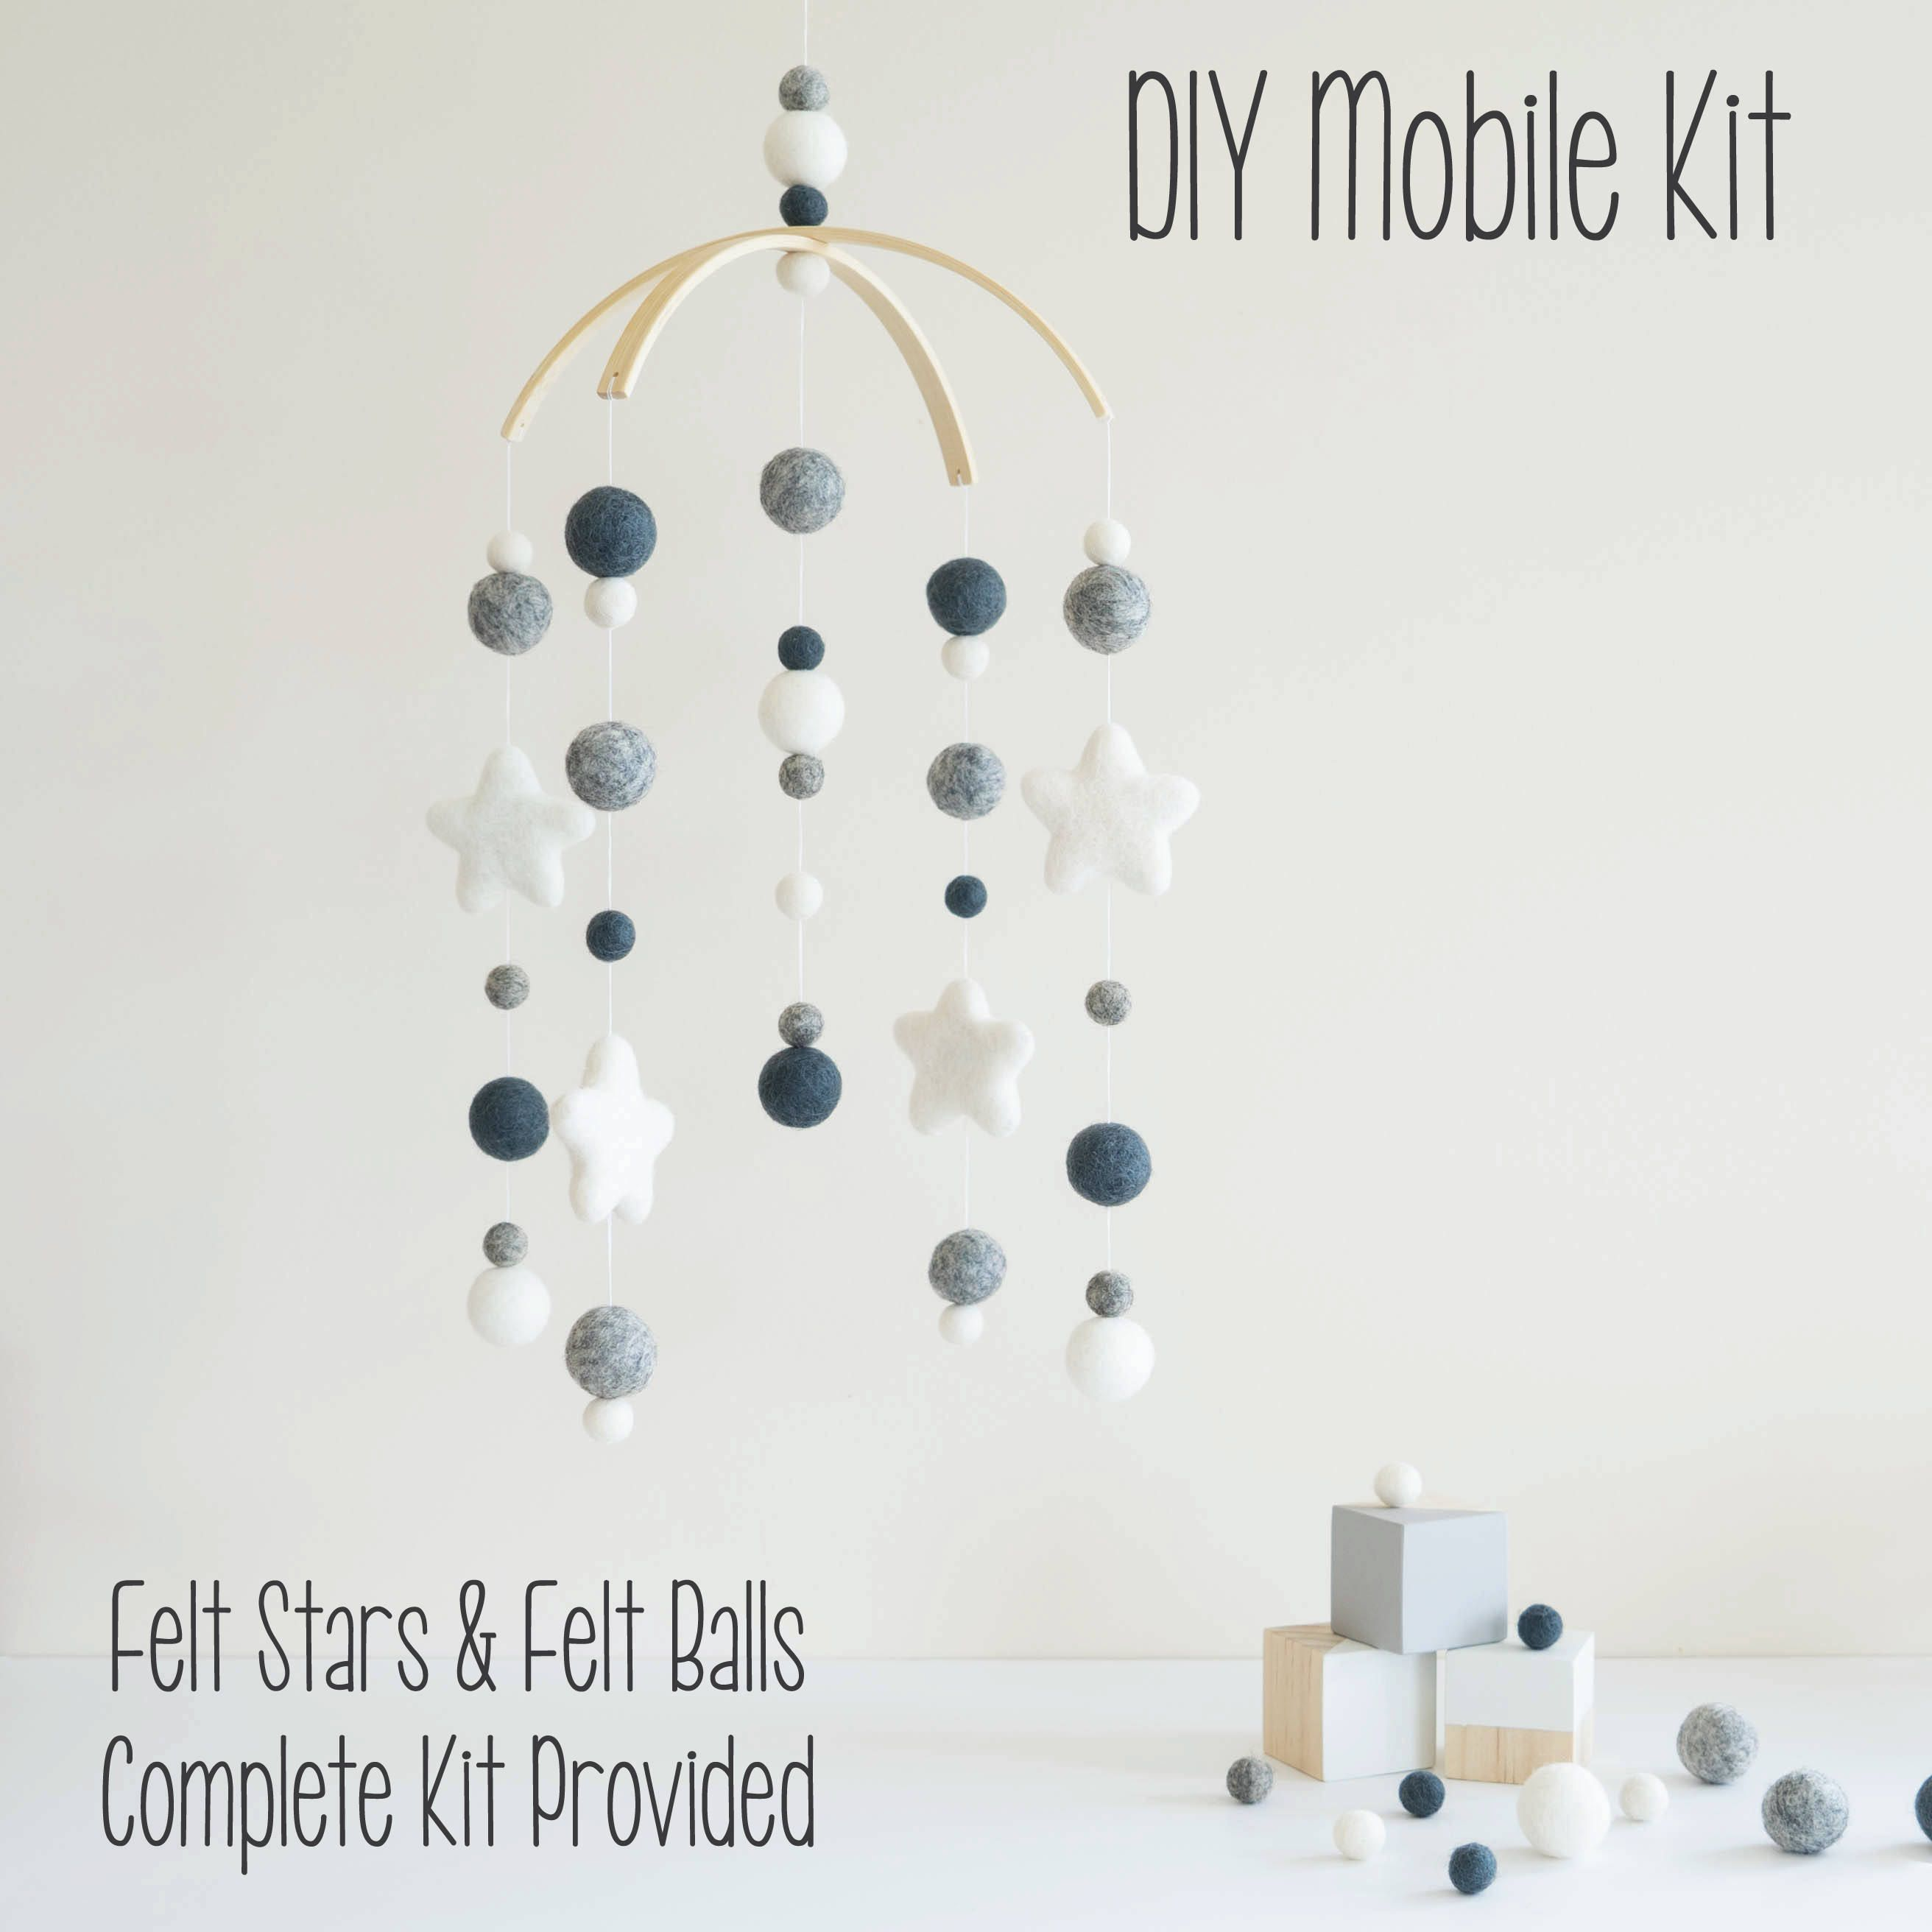 Mobile do it yourself 3